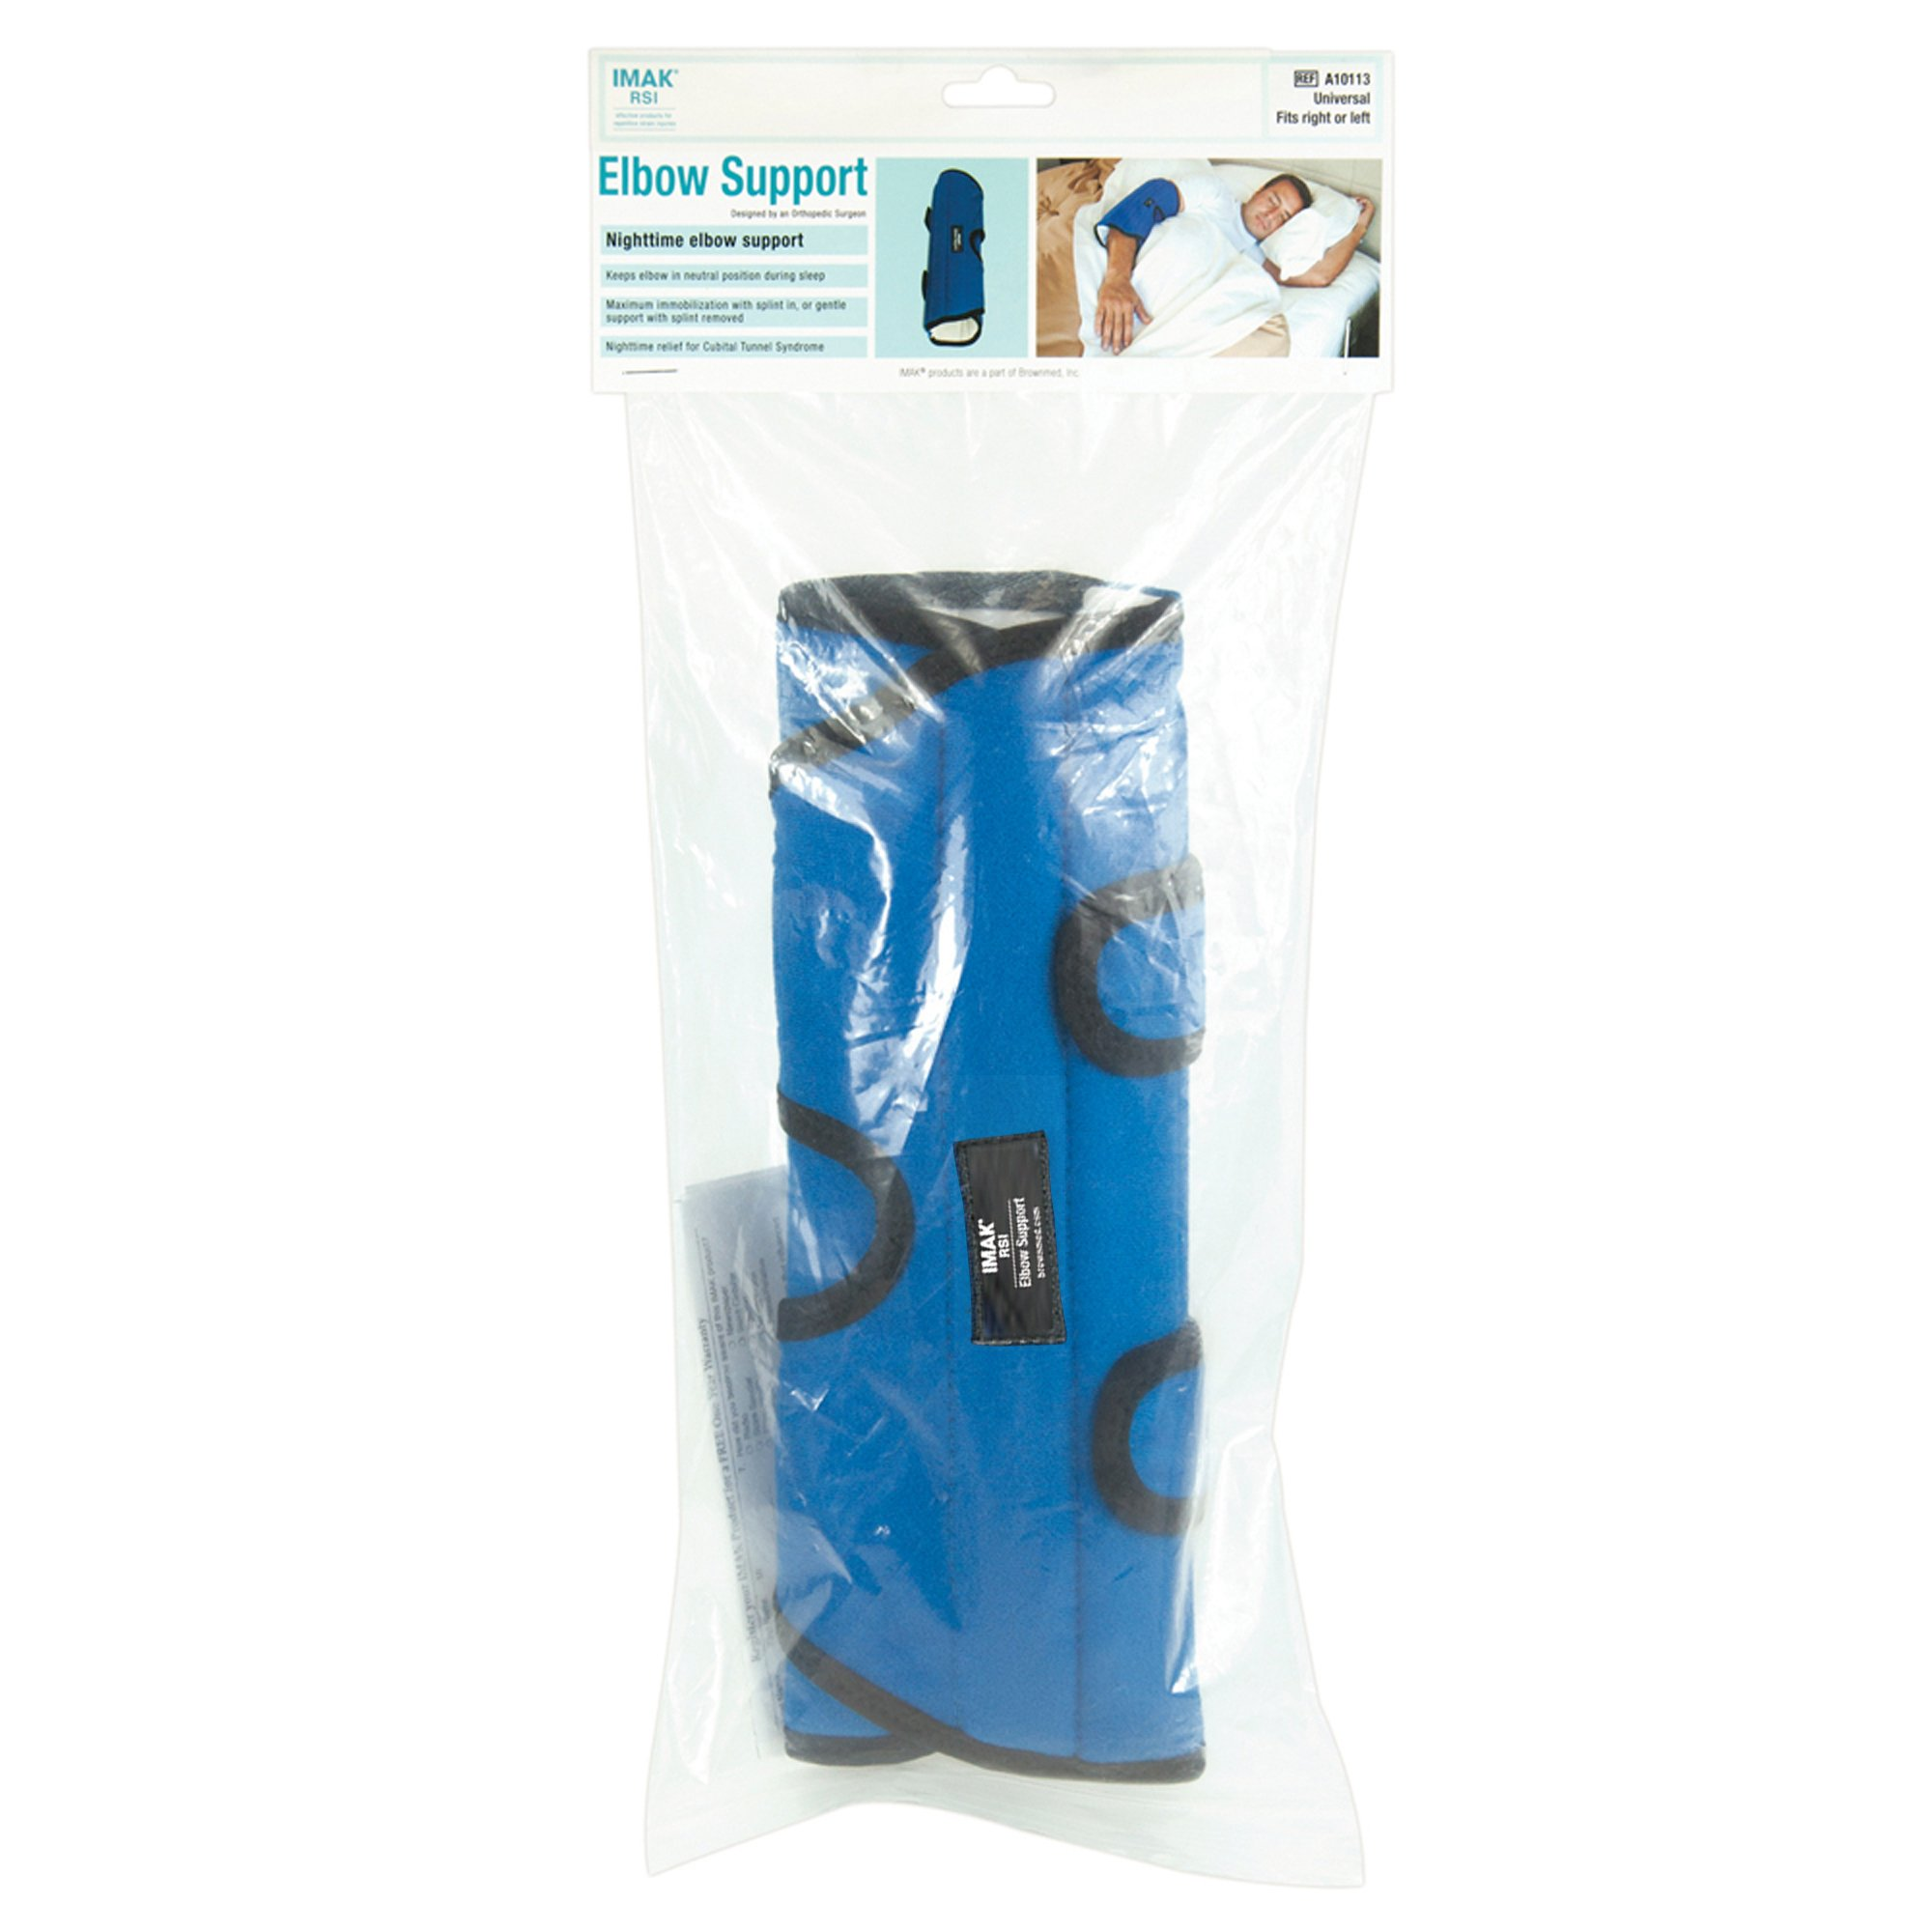 IMAK RSI Elbow Support Brace, #1 Brace for Nightime Relief of Cubital Tunnel Syndrome, XL